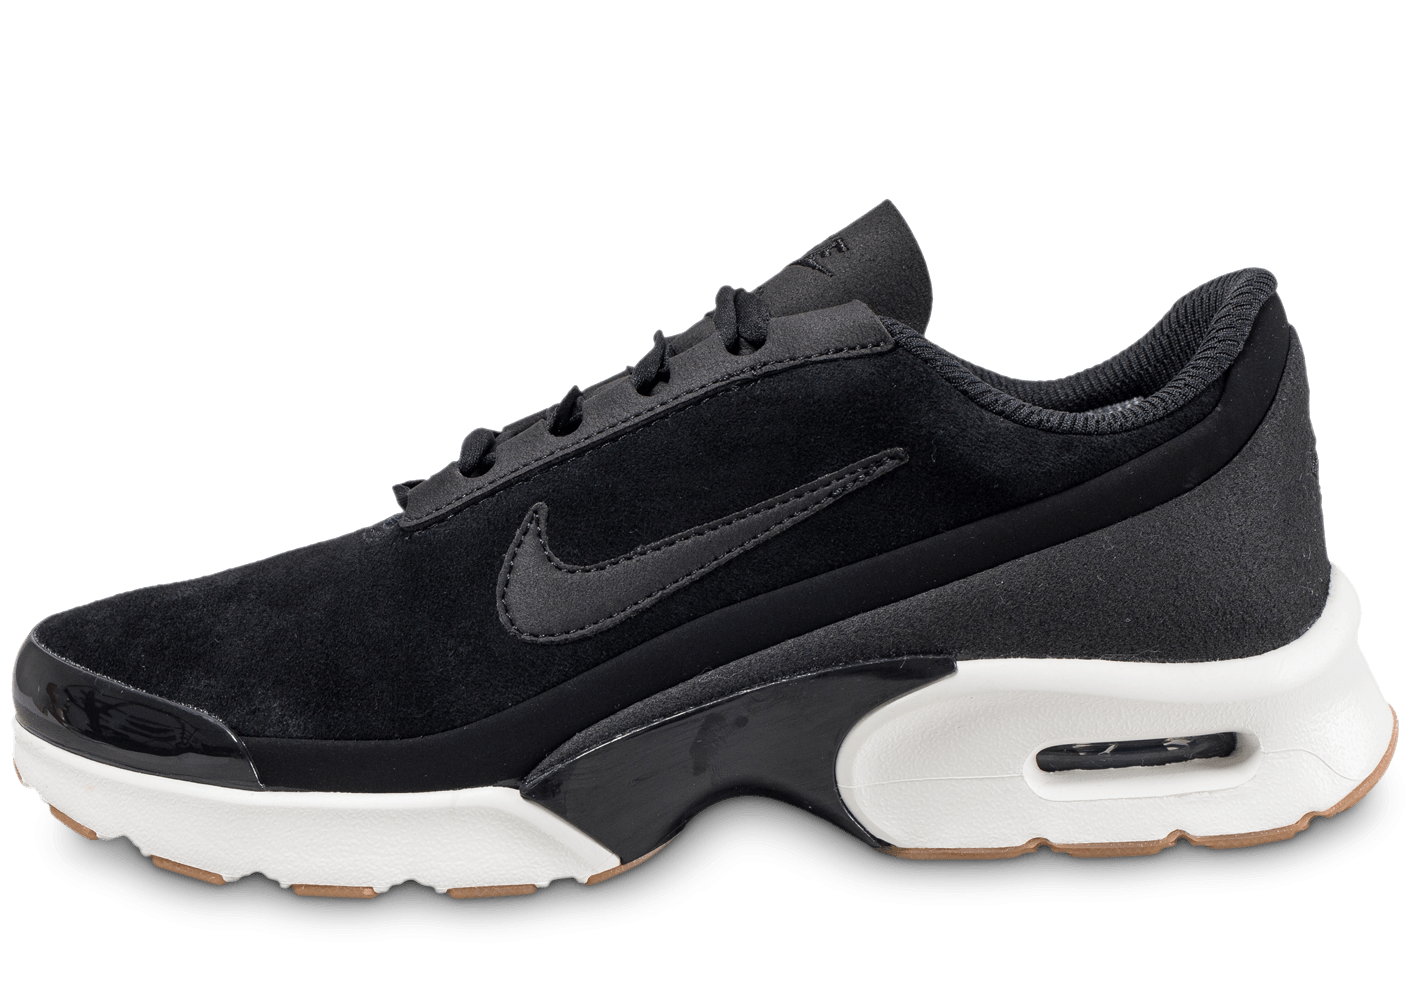 nike air max jewell noire chaussures femme chausport. Black Bedroom Furniture Sets. Home Design Ideas